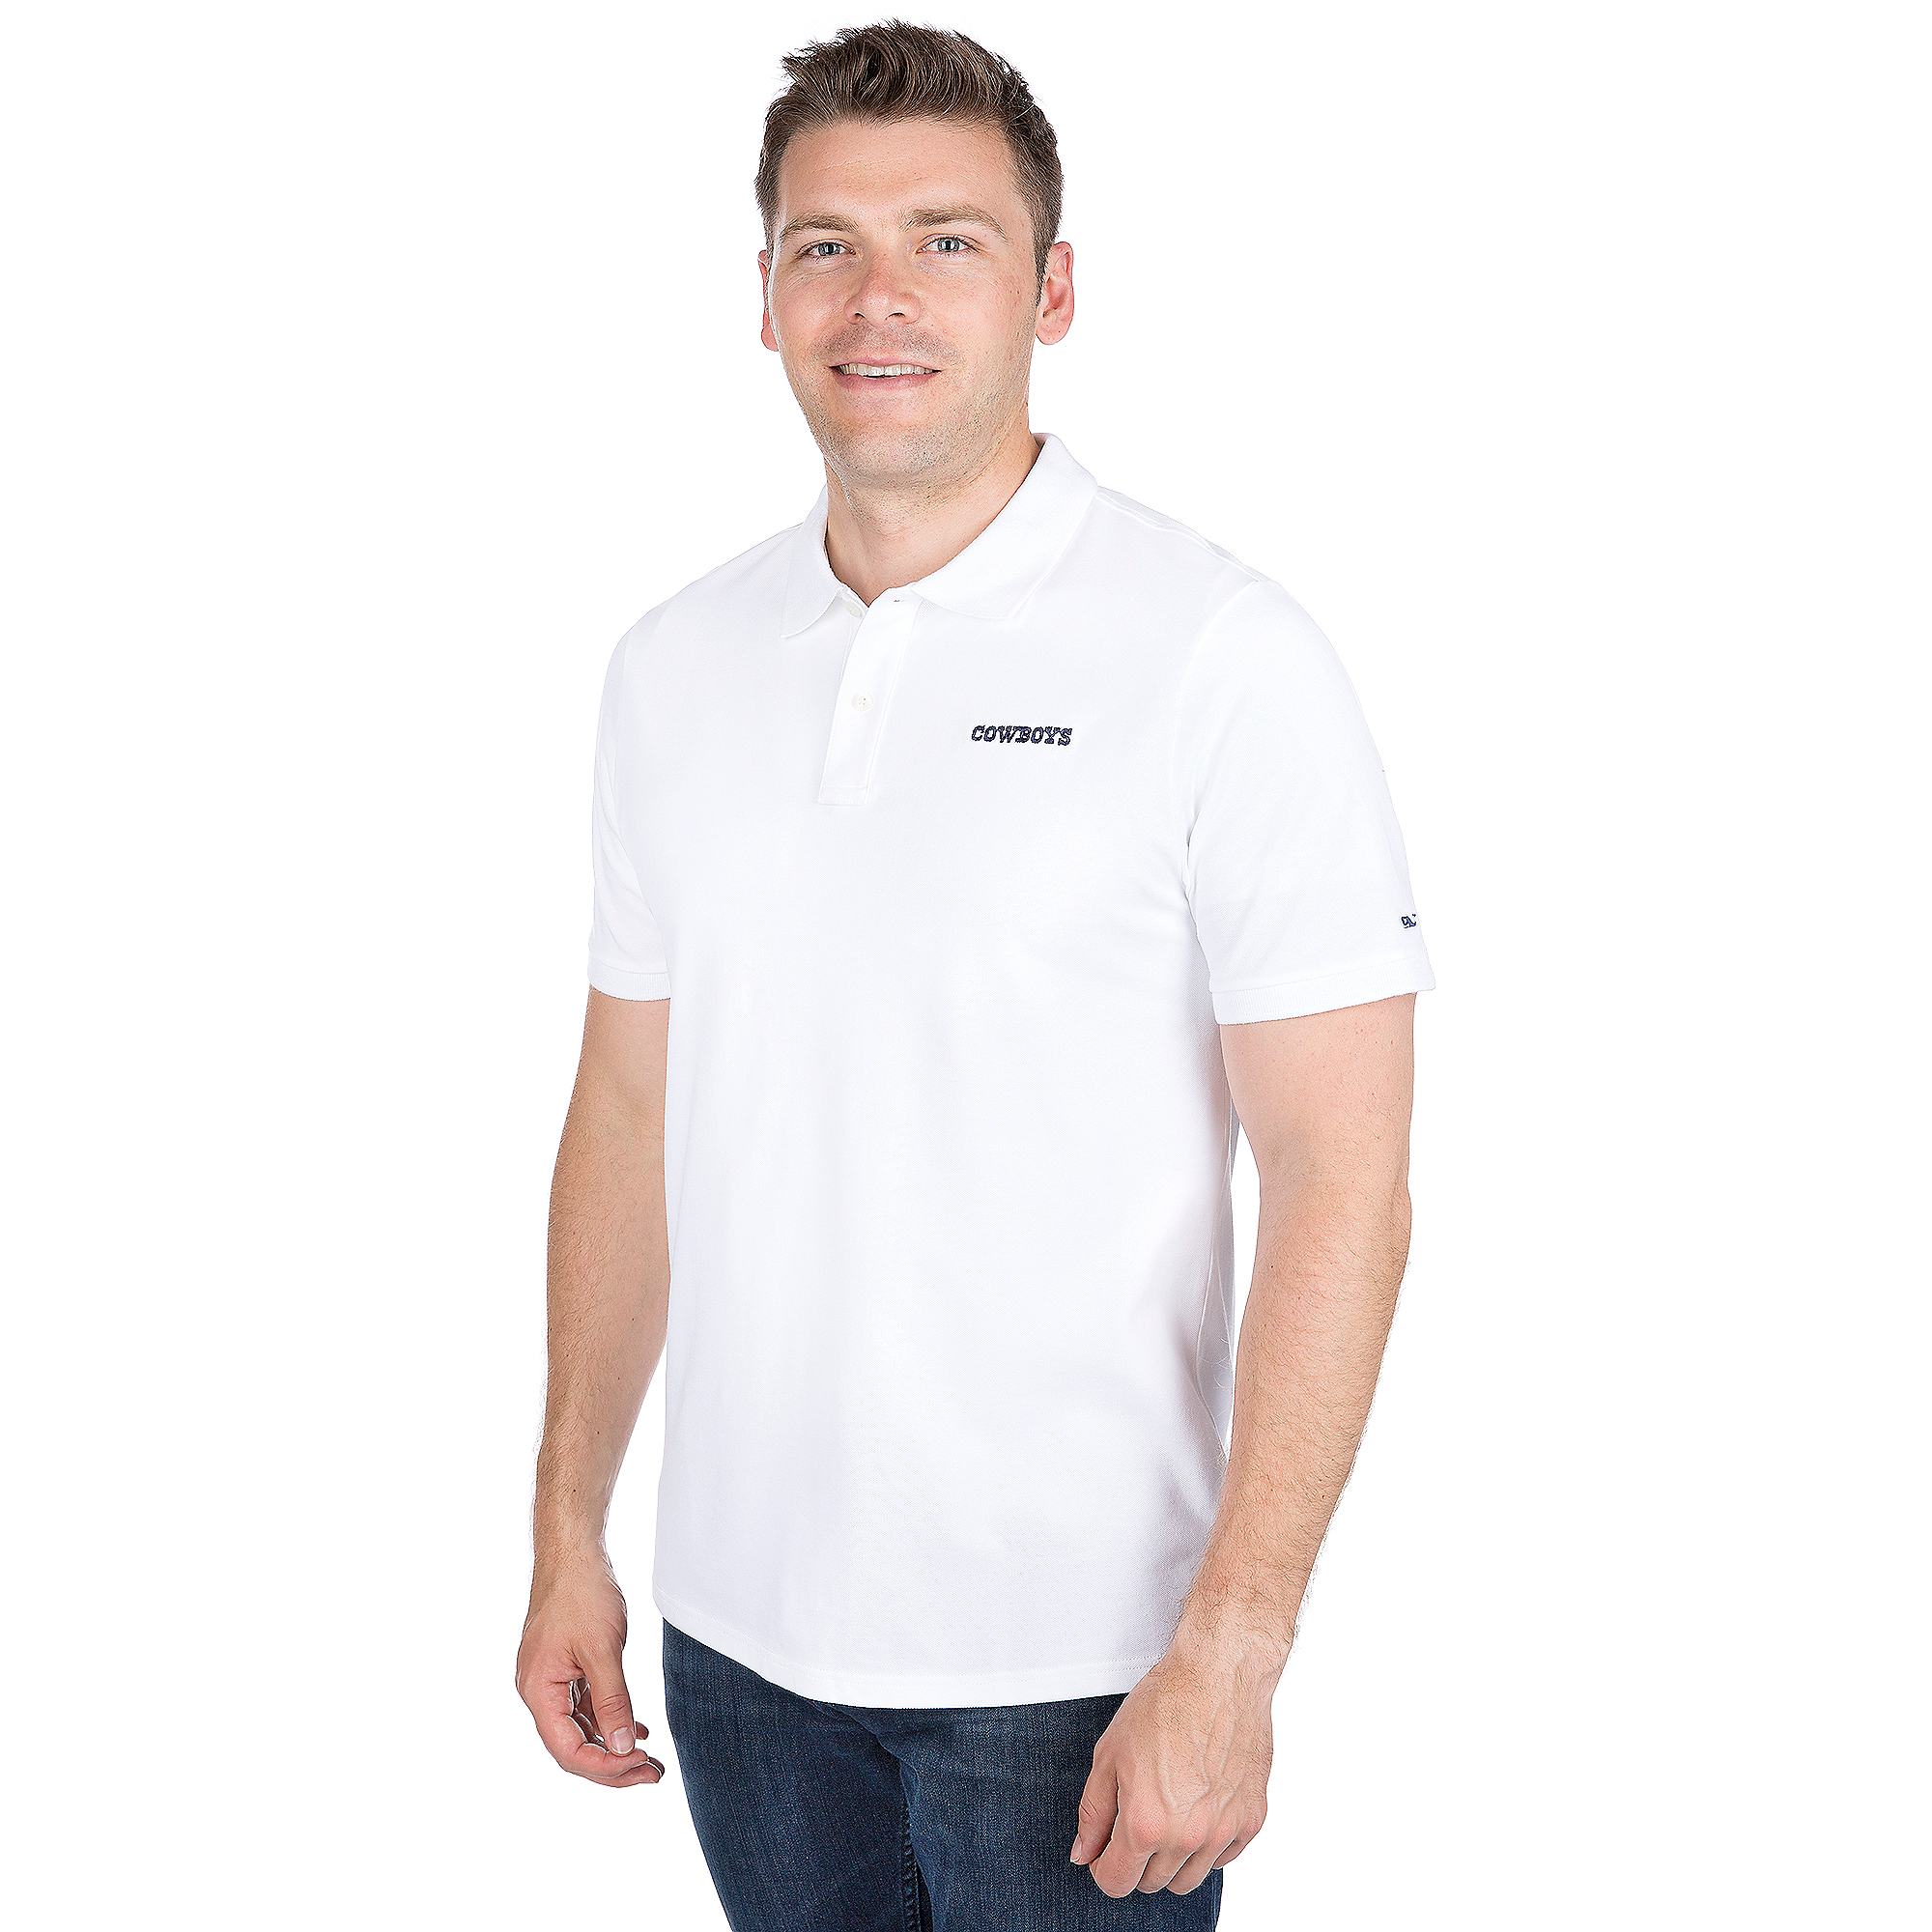 Dallas Cowboys Vineyard Vines Stretch Pique Polo